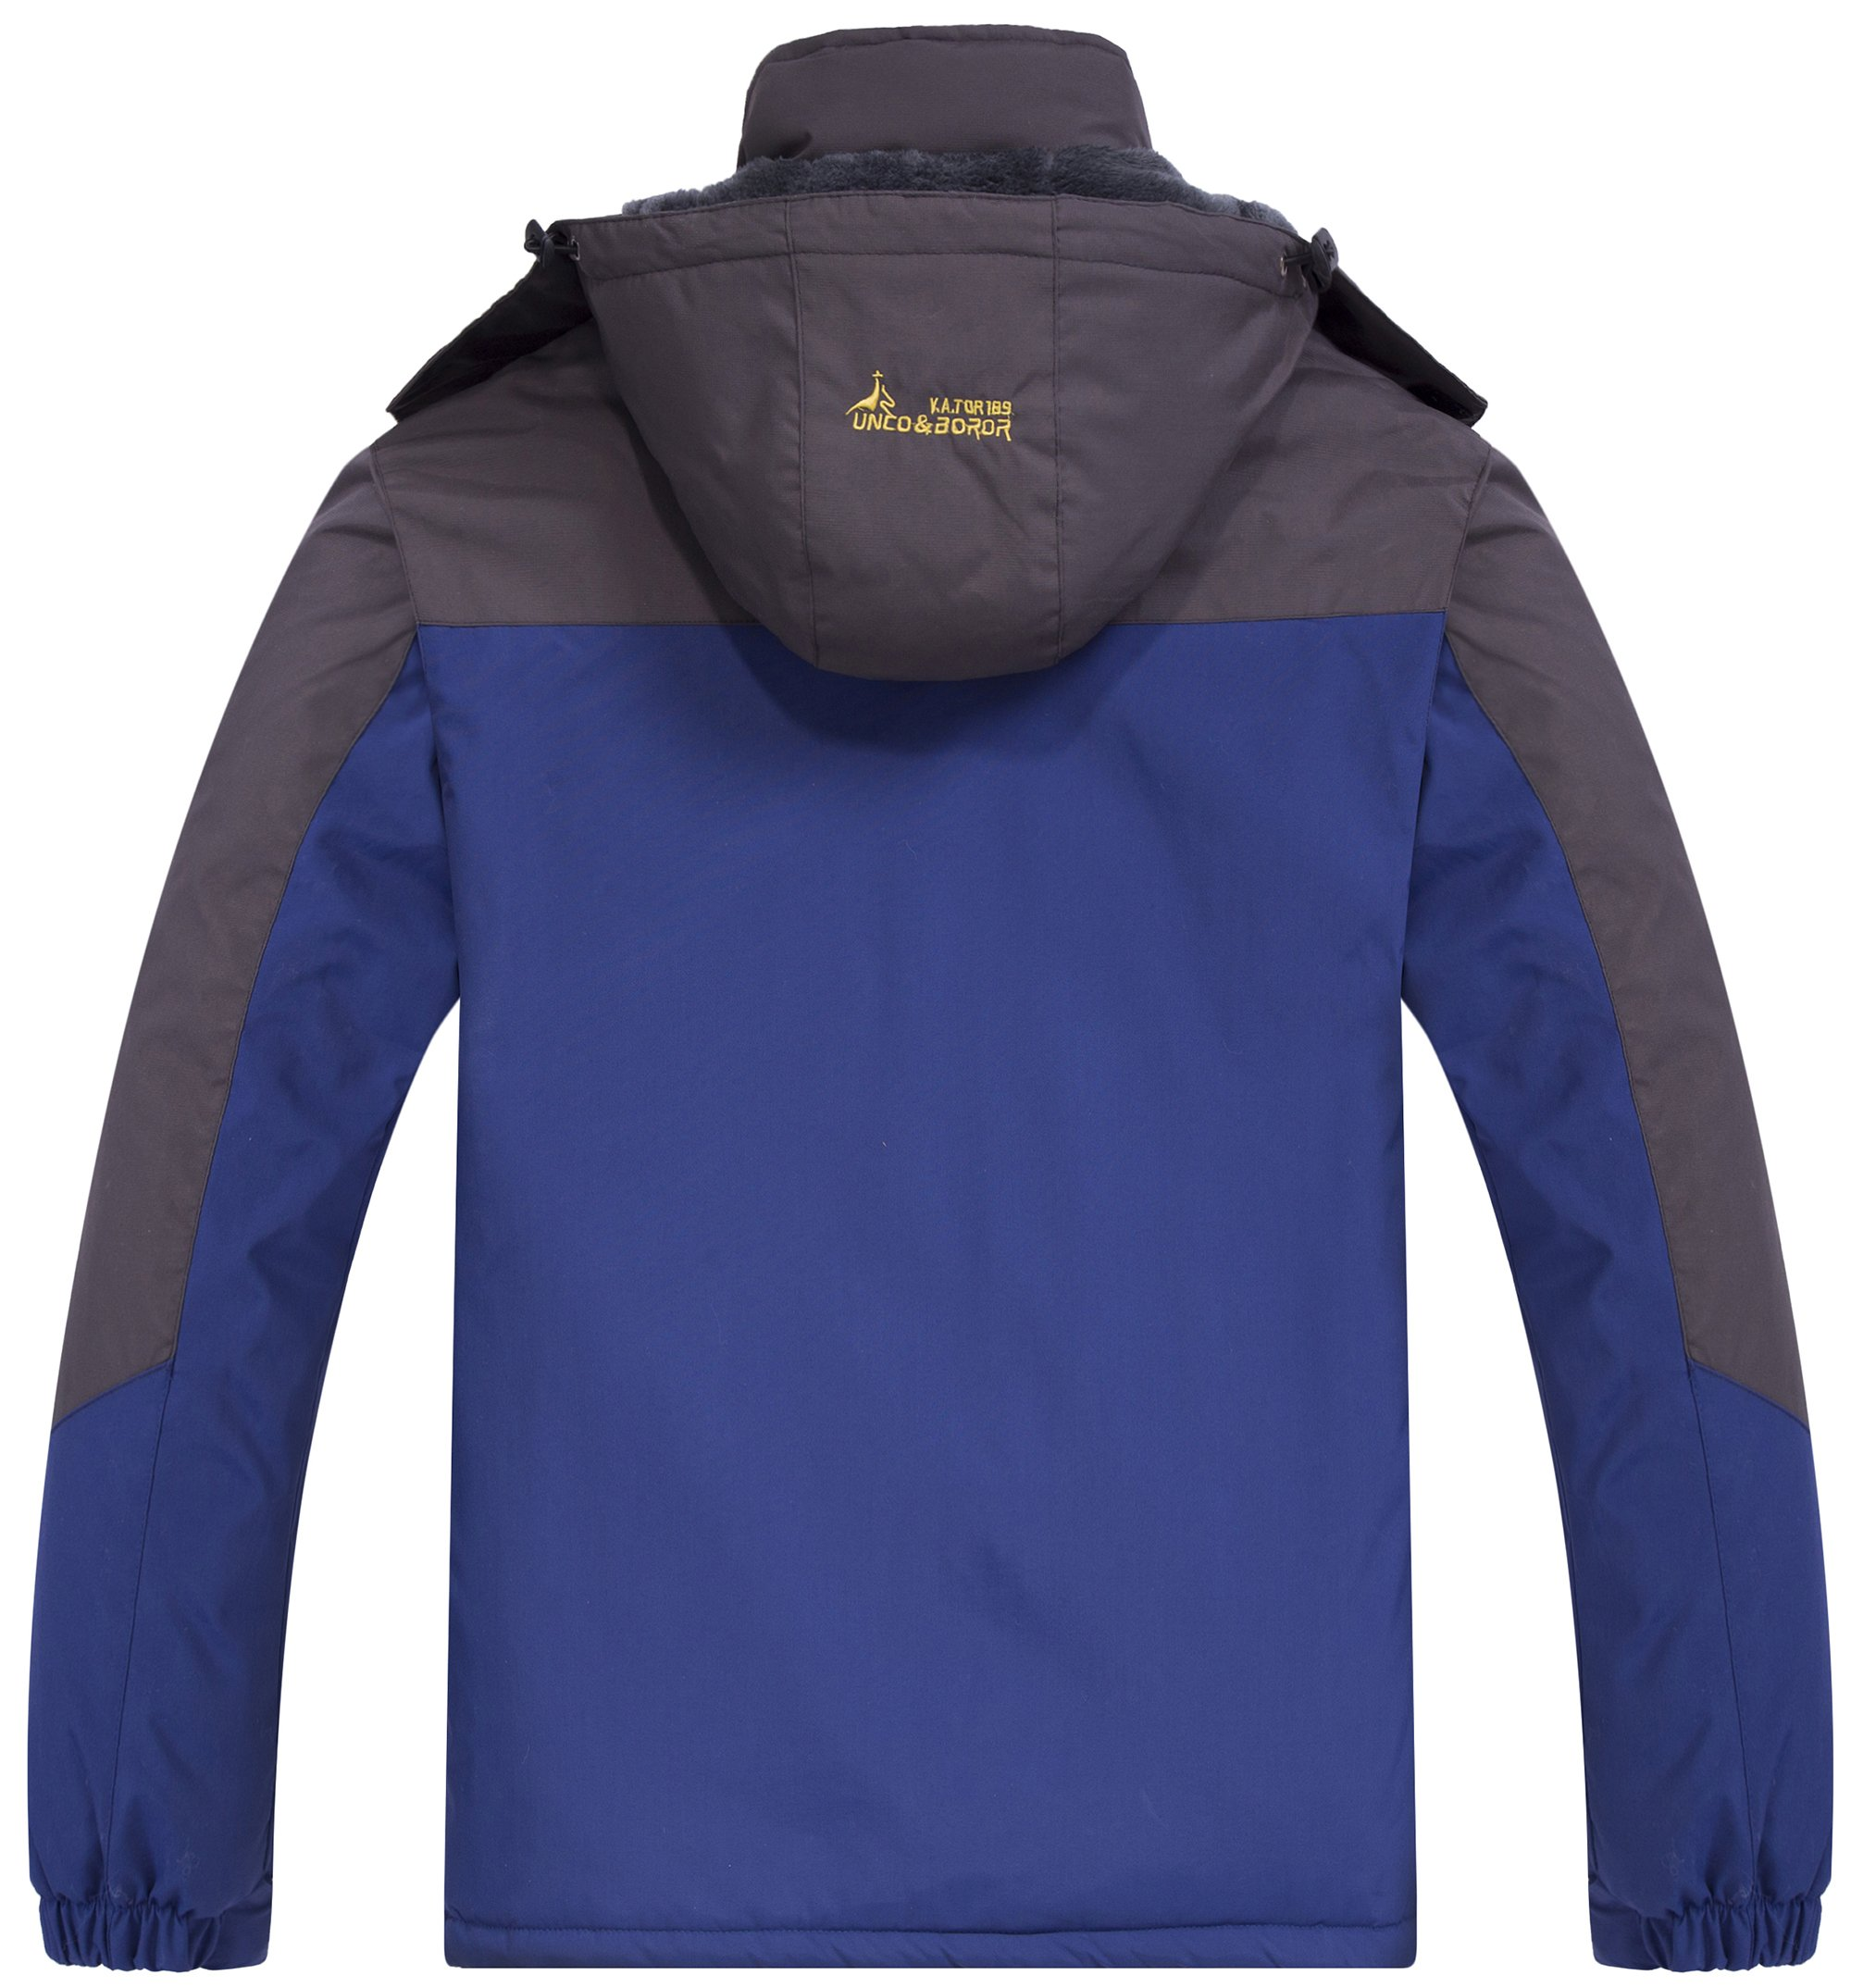 CHUSANHI Waterproof Mens Snow Ski Jacket Winter Snowboard Windproof Rain Skiing Jackets by CHUSANHI (Image #2)